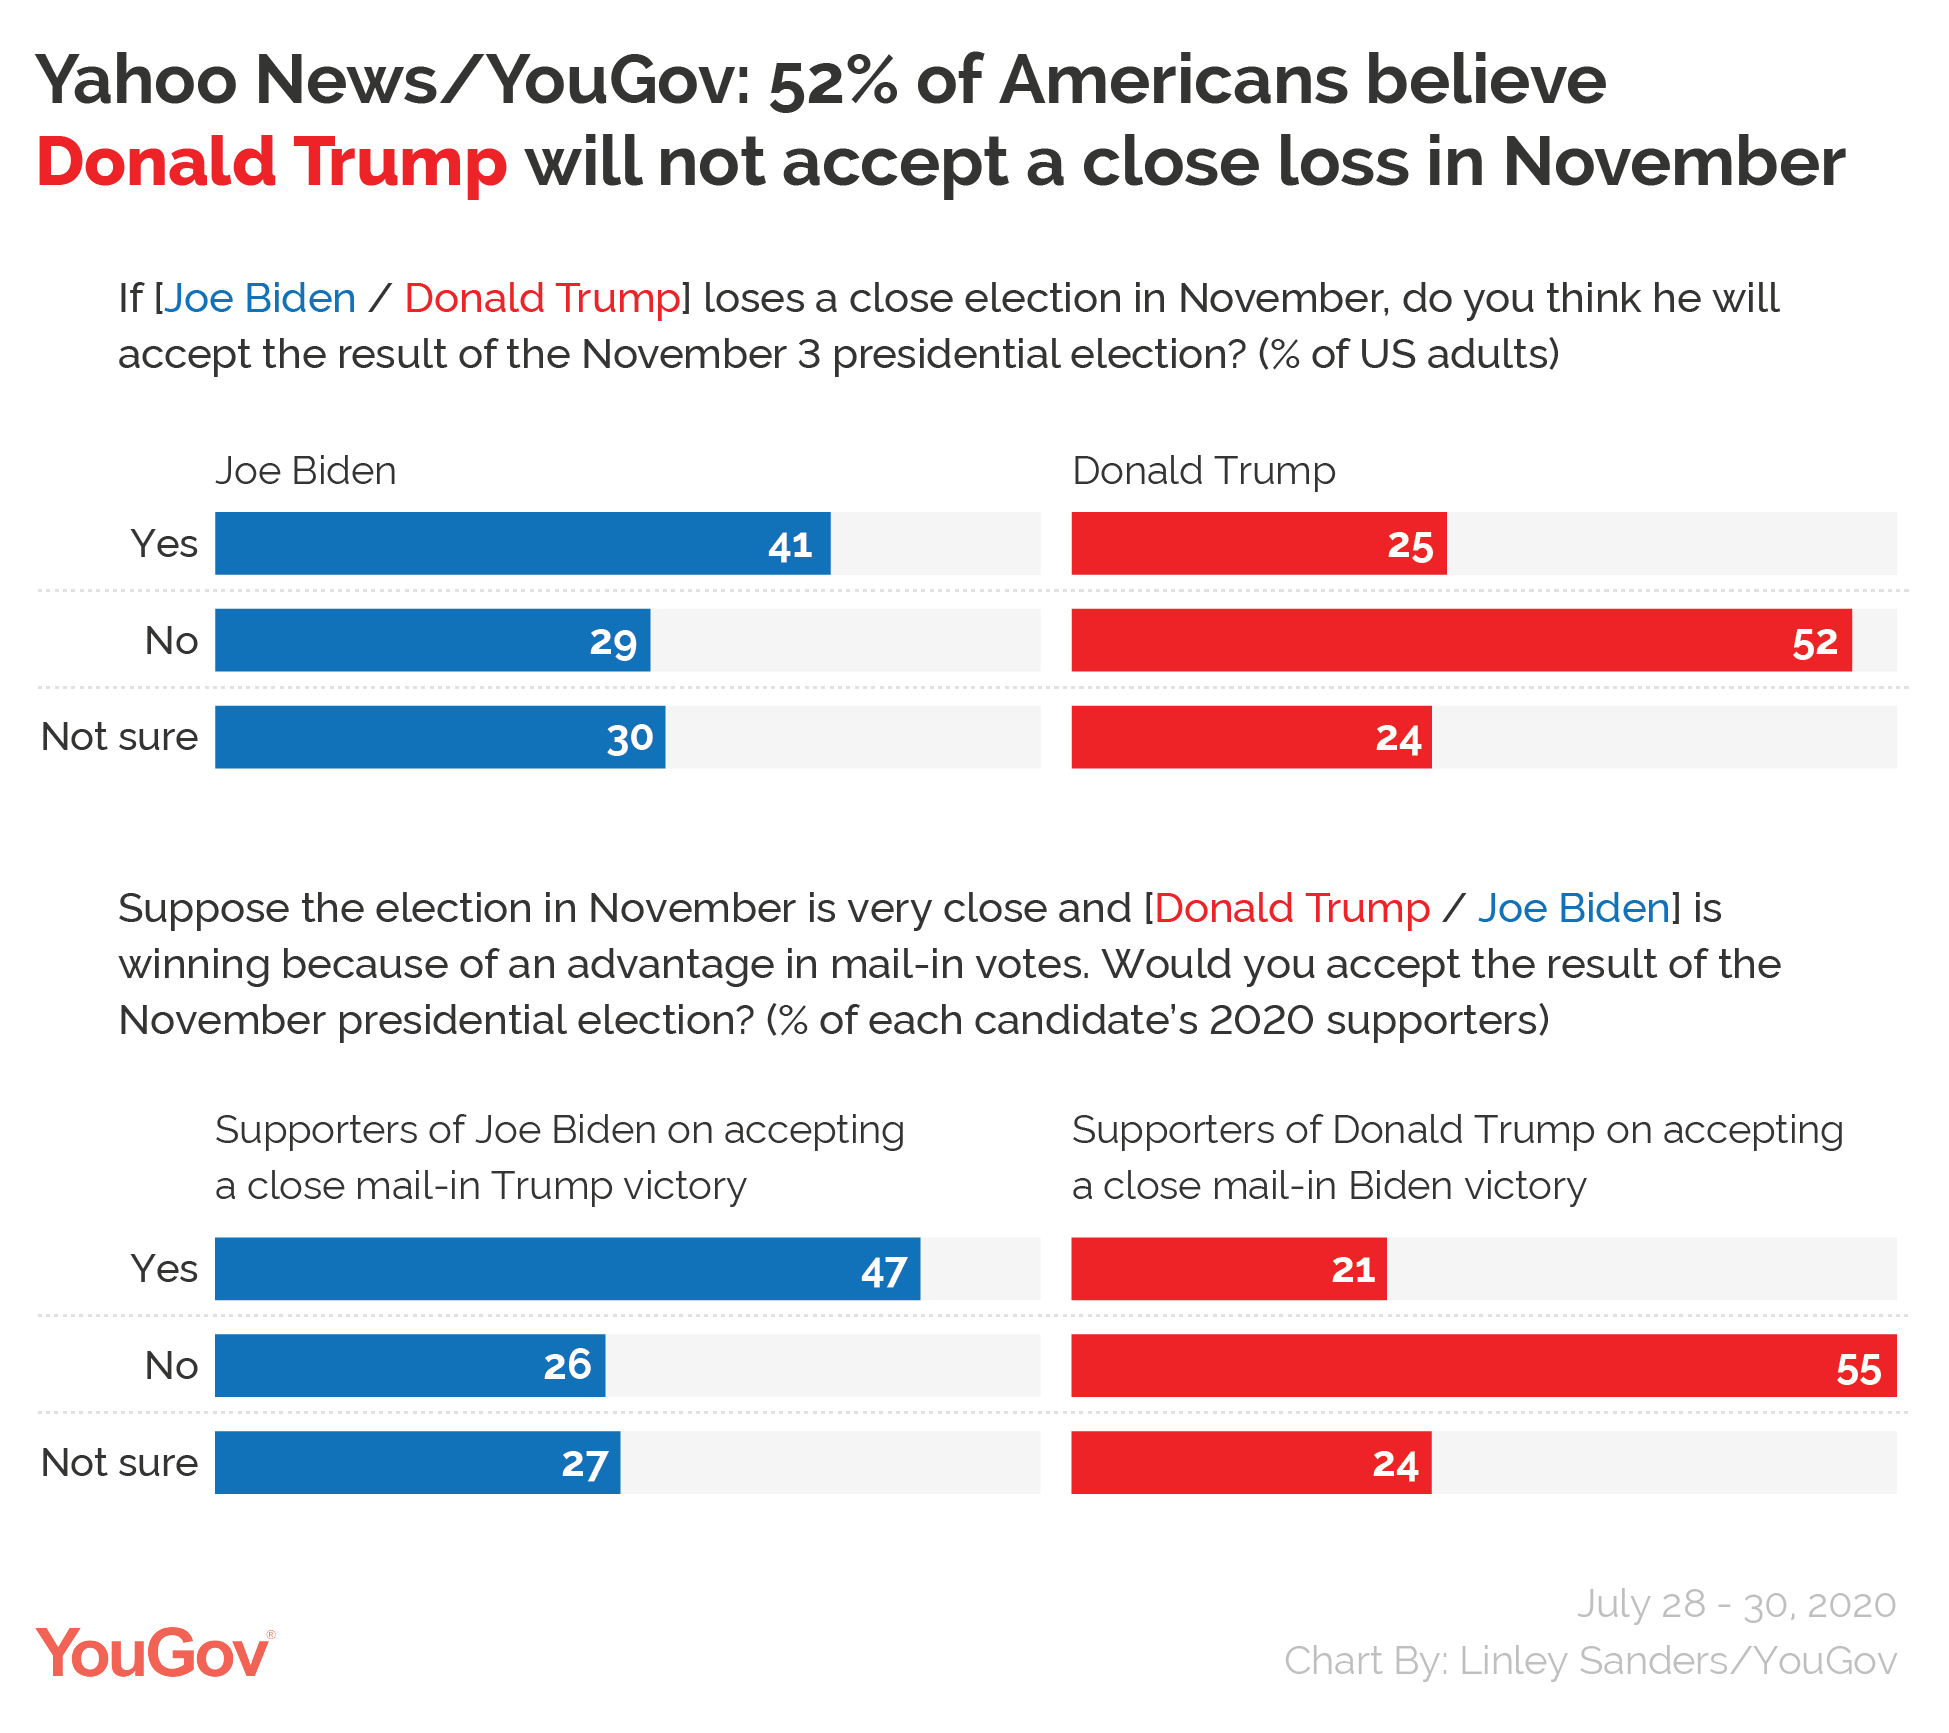 Yahoo News/YouGov: 52% of Americans believe Donald Trump will not accept a close loss in November